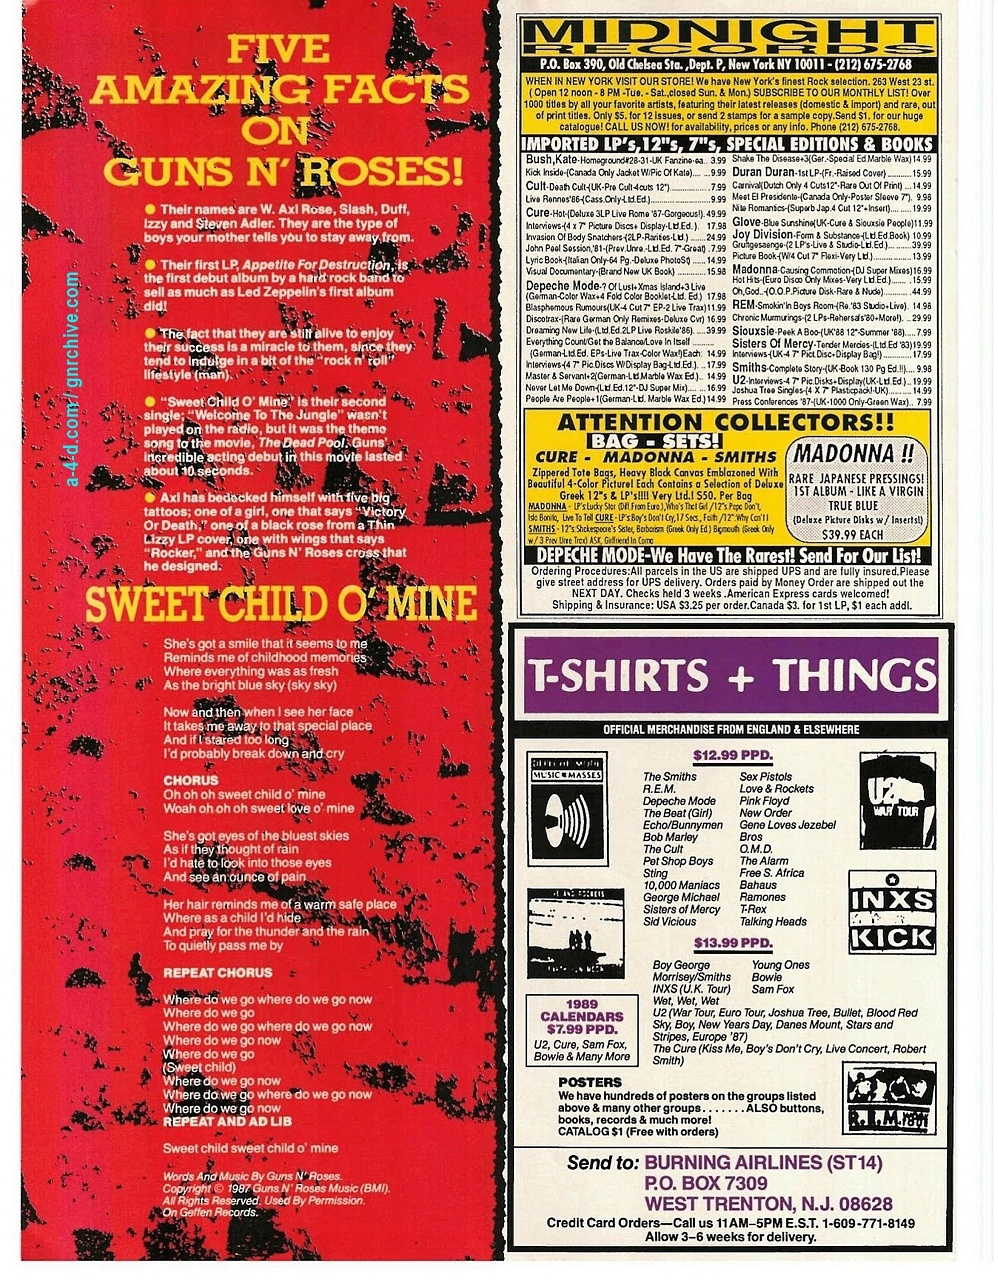 1988.11.DD - Smash Hits - Shooting From The Lip With Guns N' Roses! (Slash) 1988-113